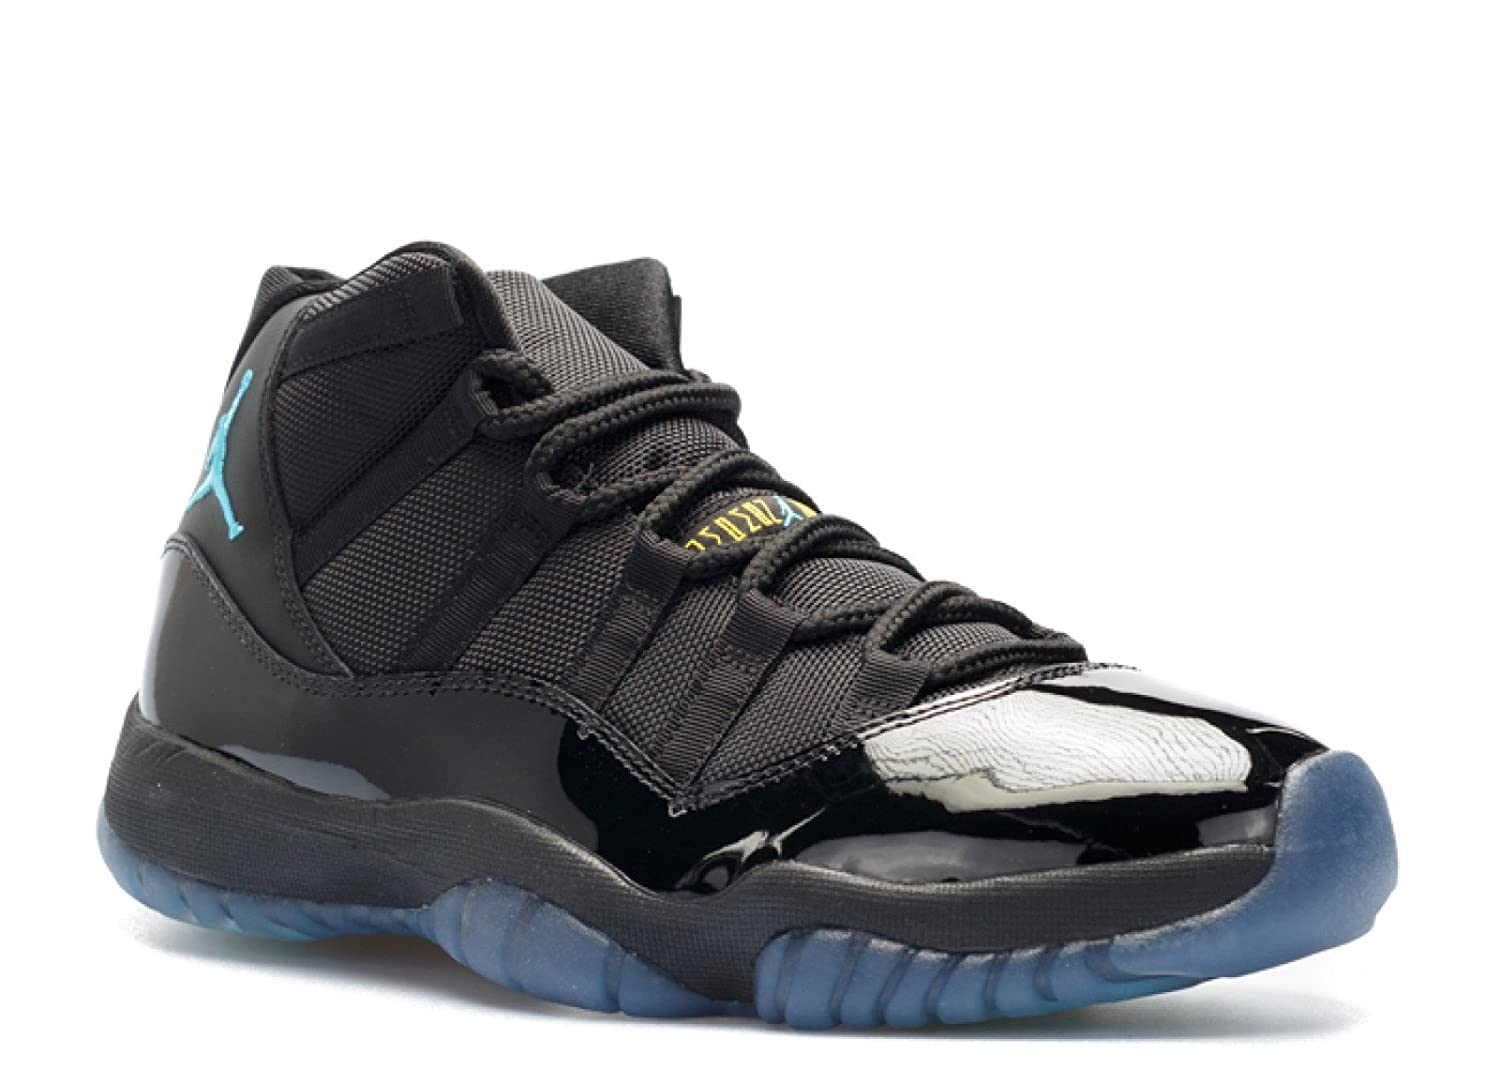 best website 8d271 e87de Amazon.com   Nike AIR Jordan 11 Retro  Gamma Blue  - 378037-006 - Size 13.5    Basketball